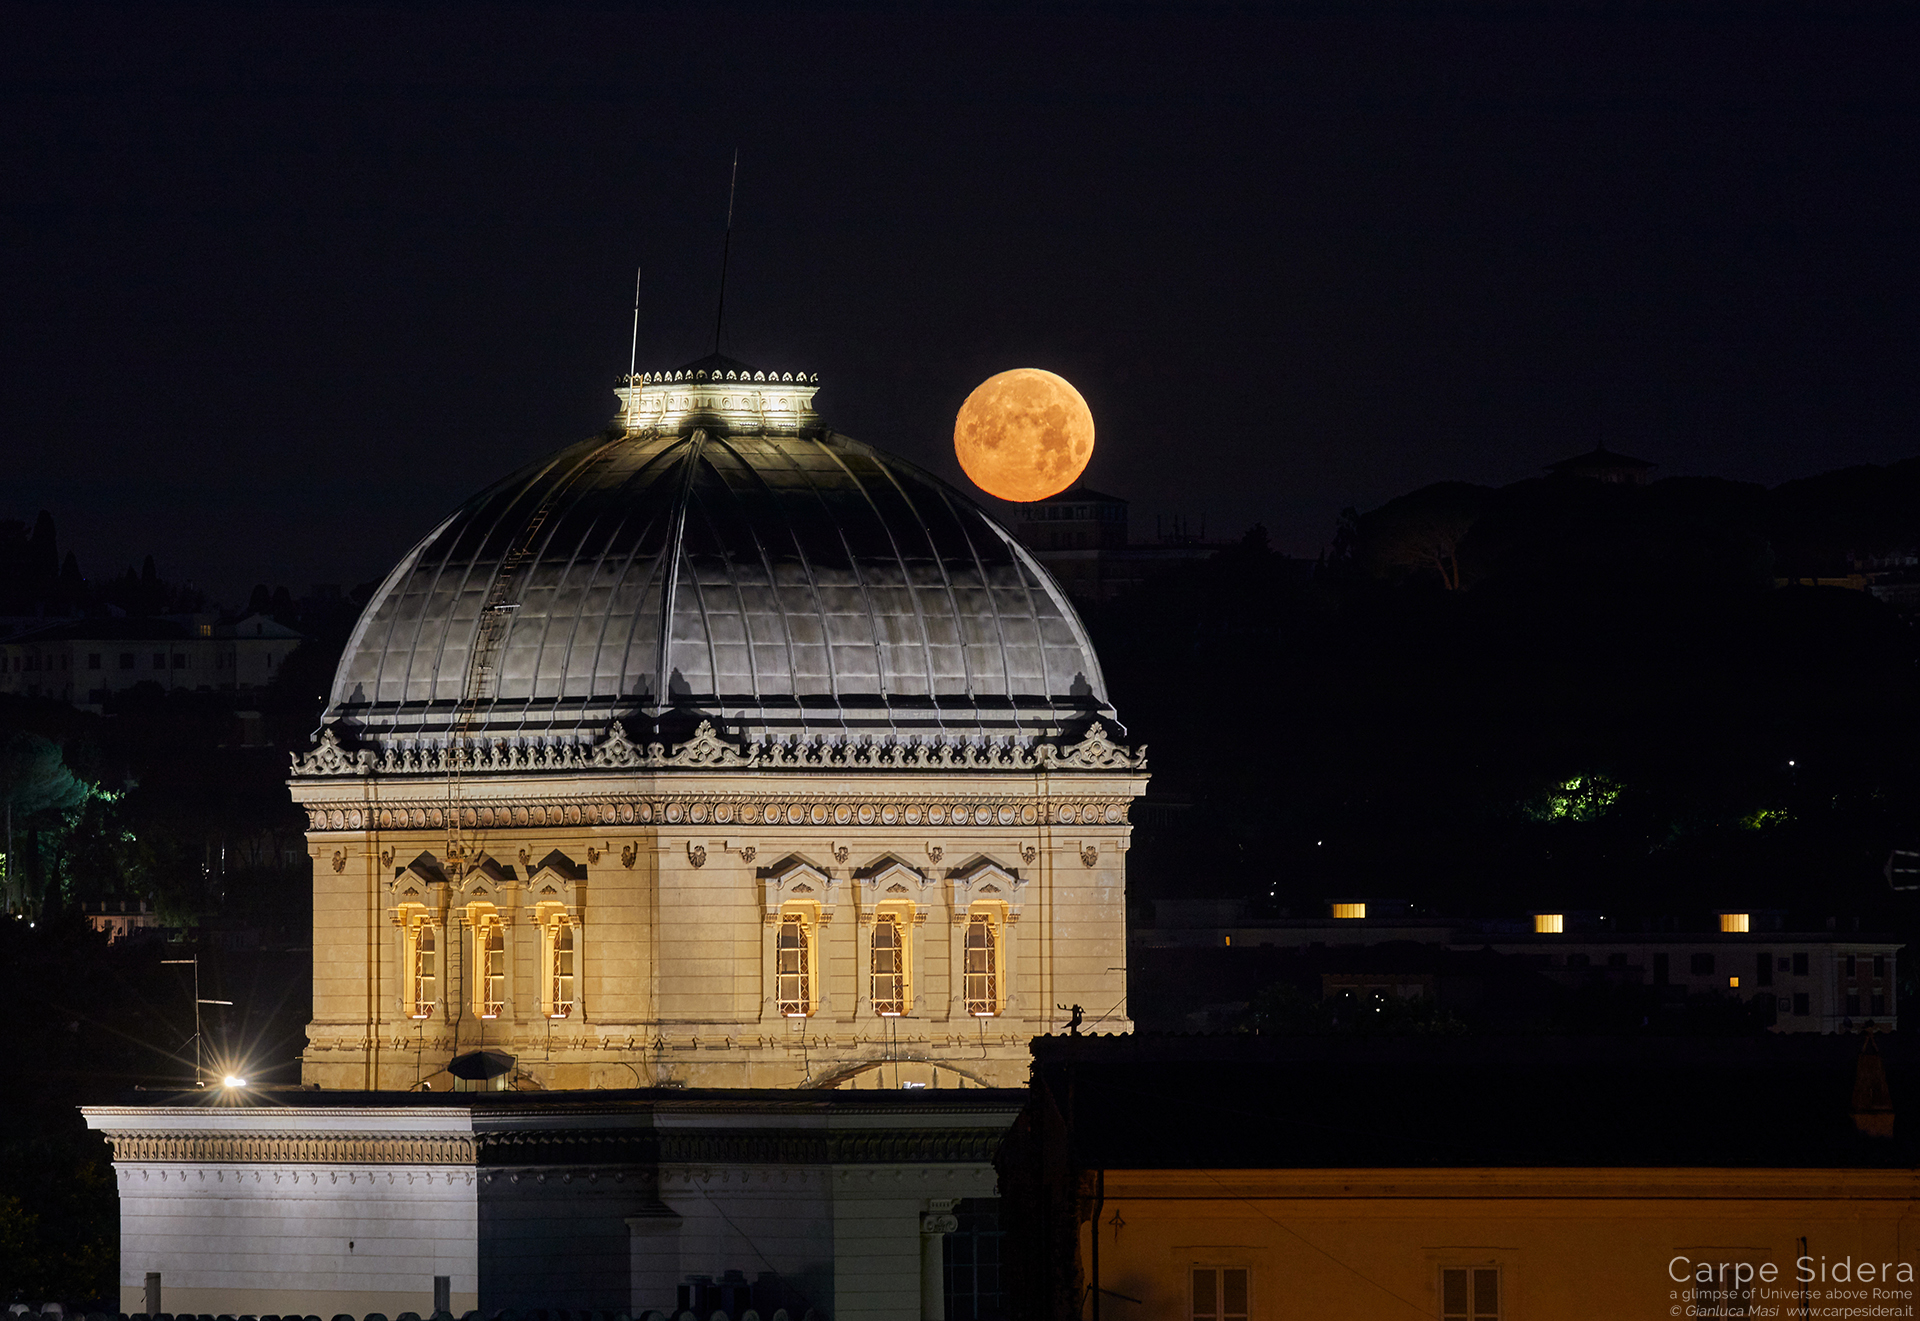 On 16 June 2019, an almost full Moon set in a still dark sky behind the Synagogue of Rome -16 June 2019